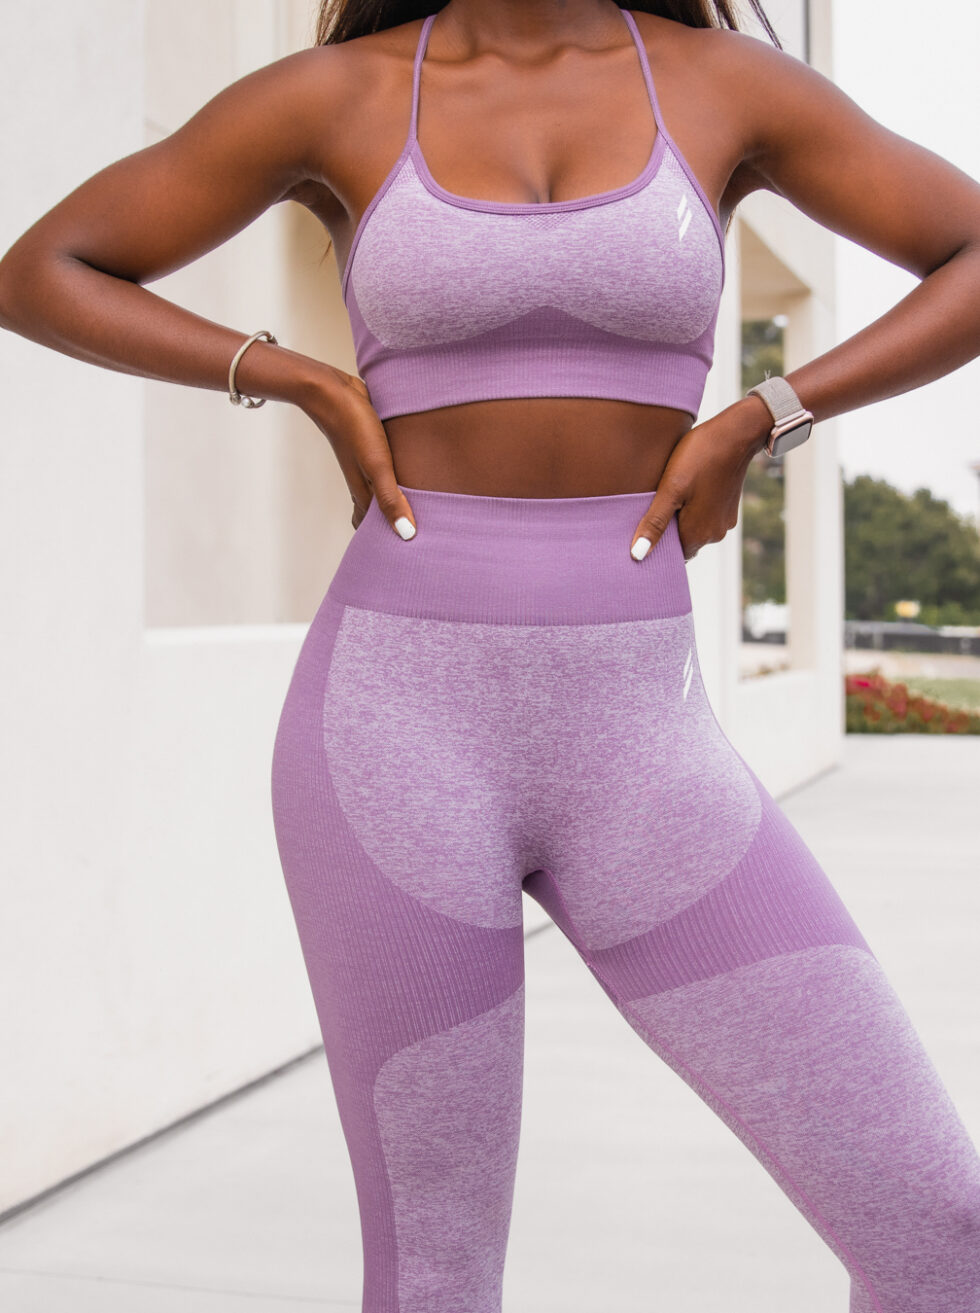 Do Do You Even Leggings fit true to size?